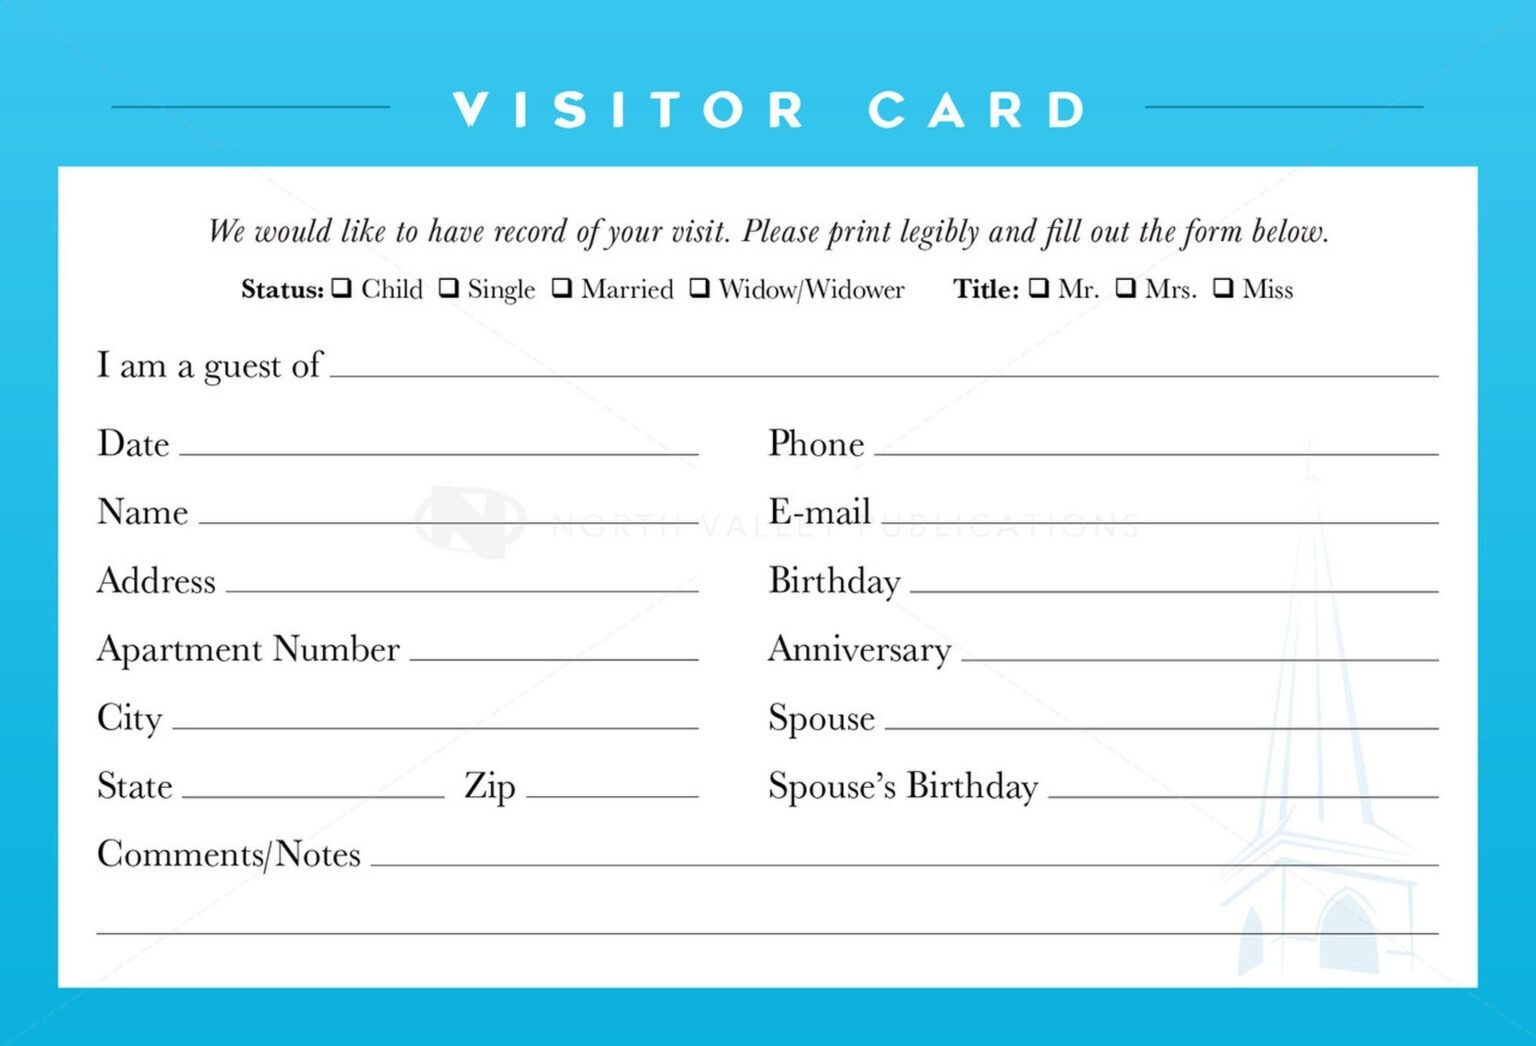 Guest Card Template Horizonconsulting Co In Church Visitor Card Template Word Free Business Card Templates Business Plan Template Card Template